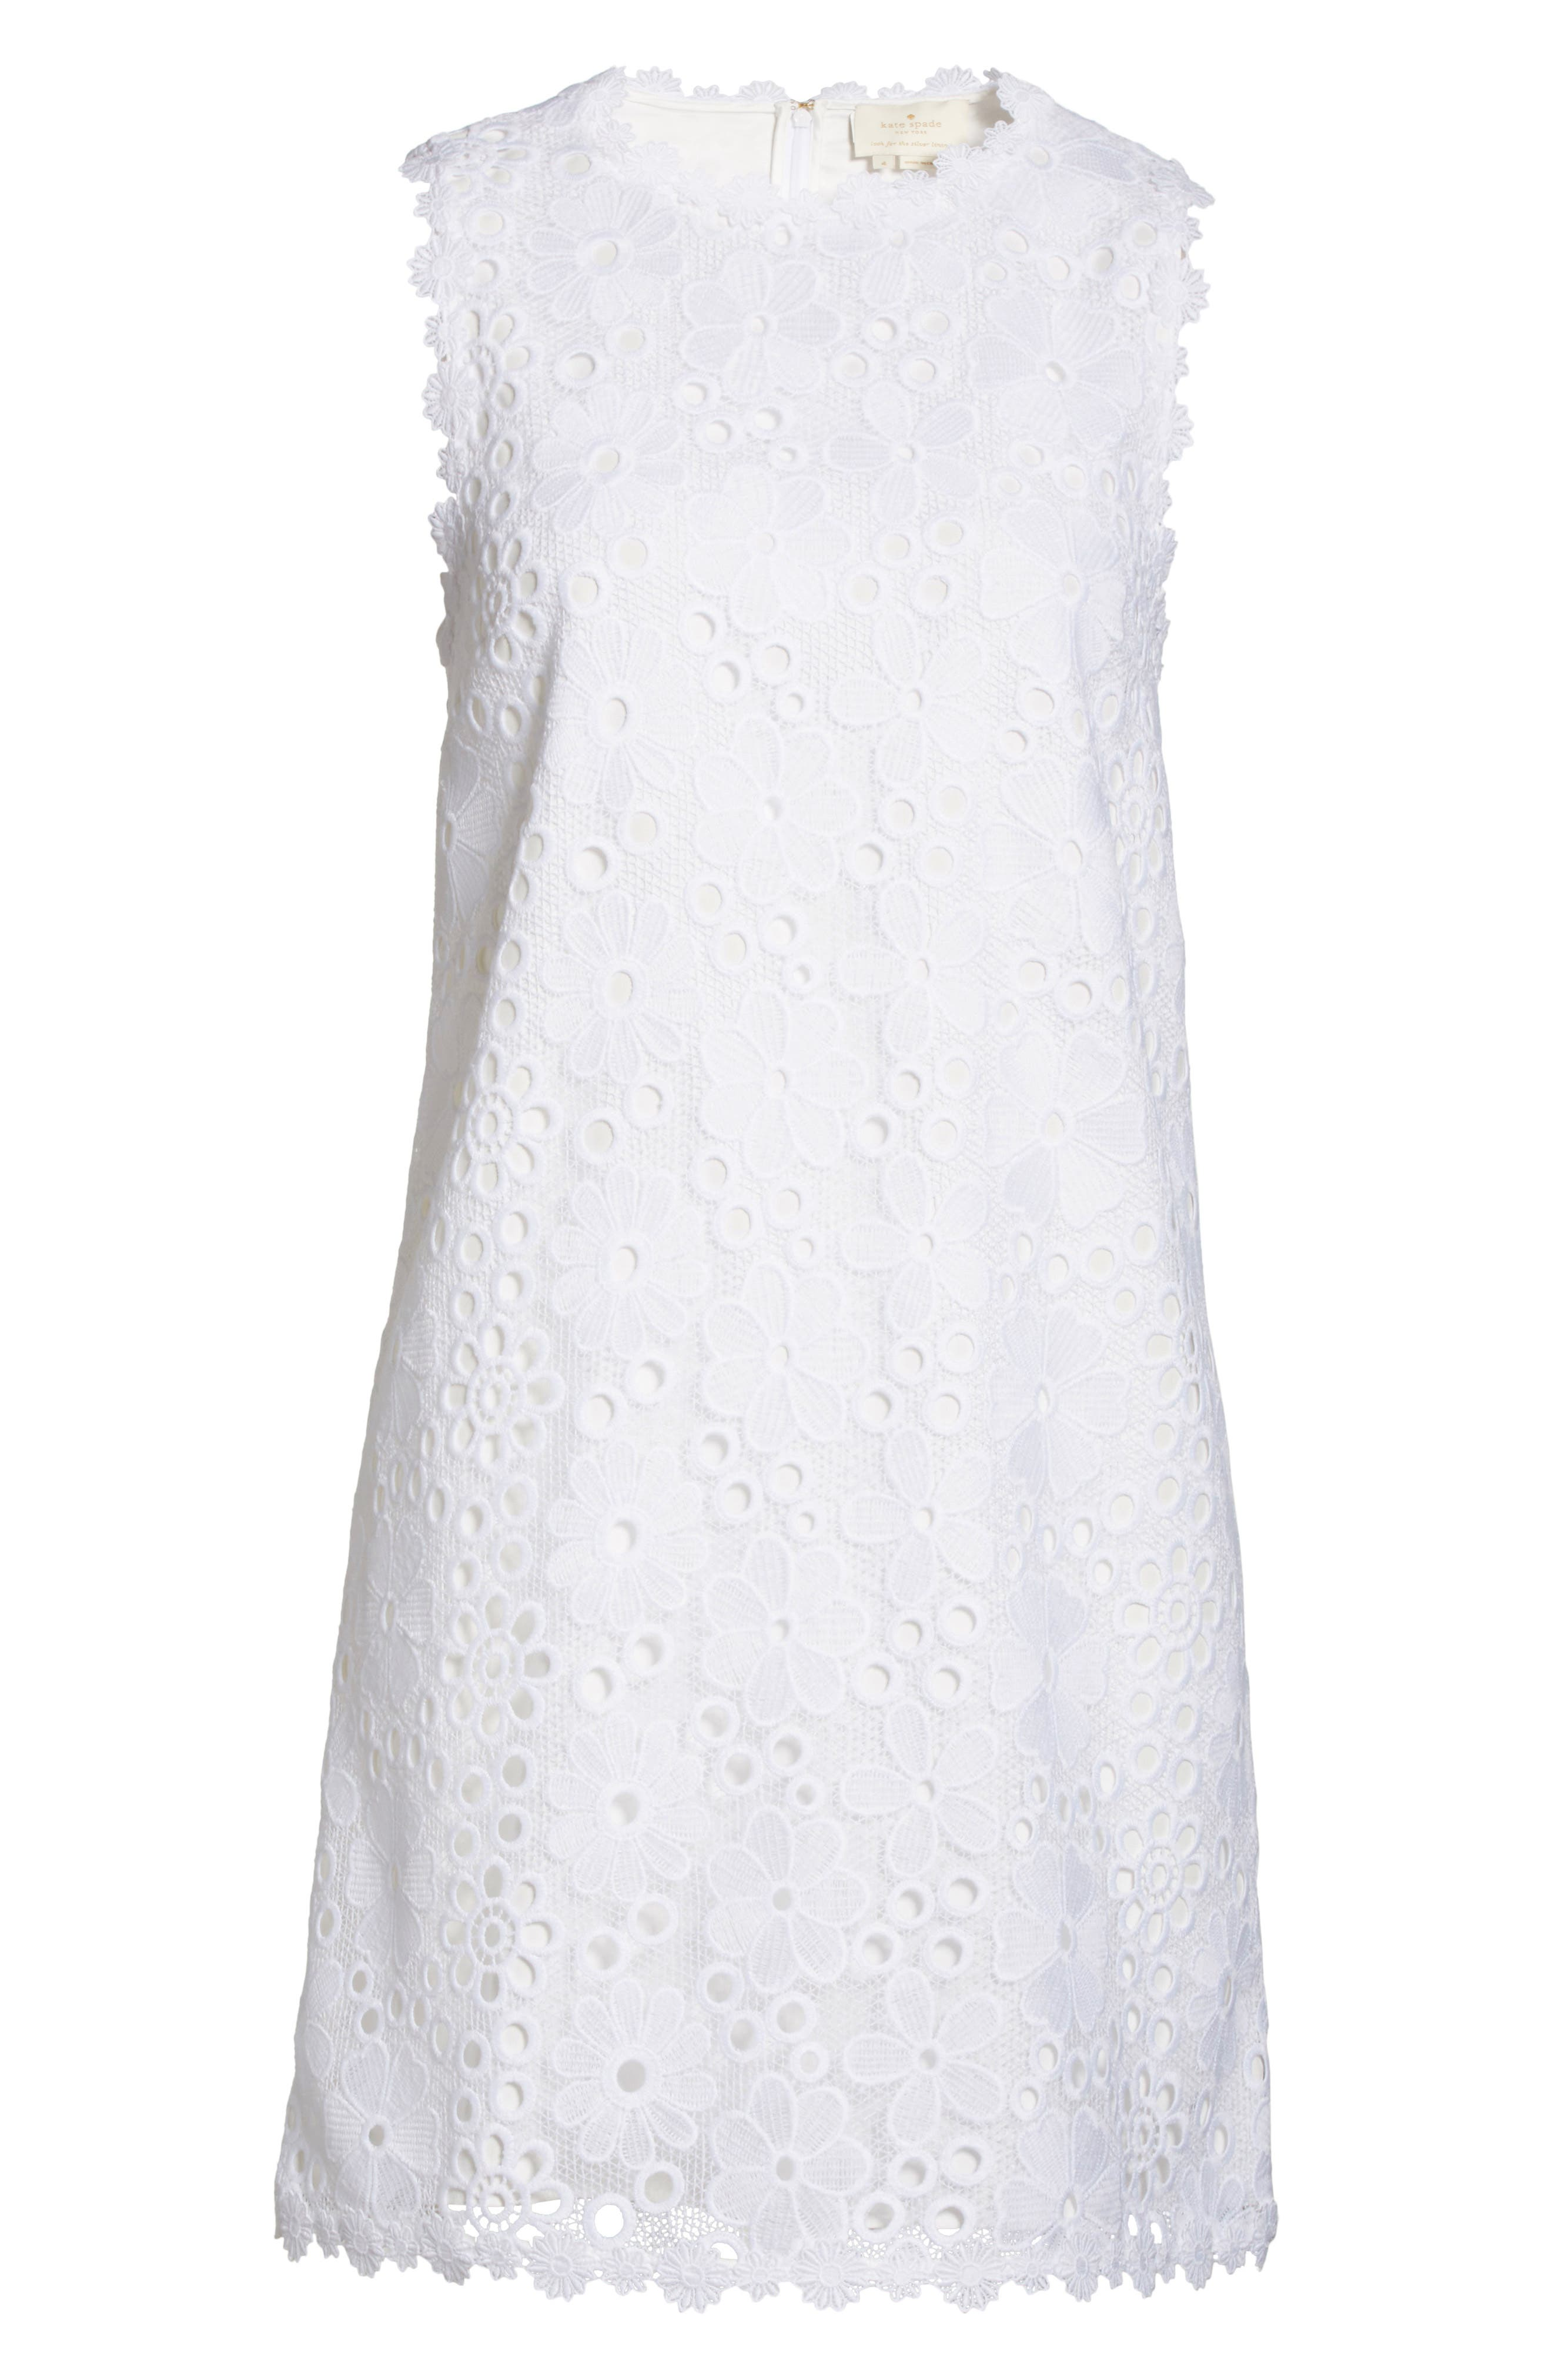 lace shift dress,                             Alternate thumbnail 6, color,                             107